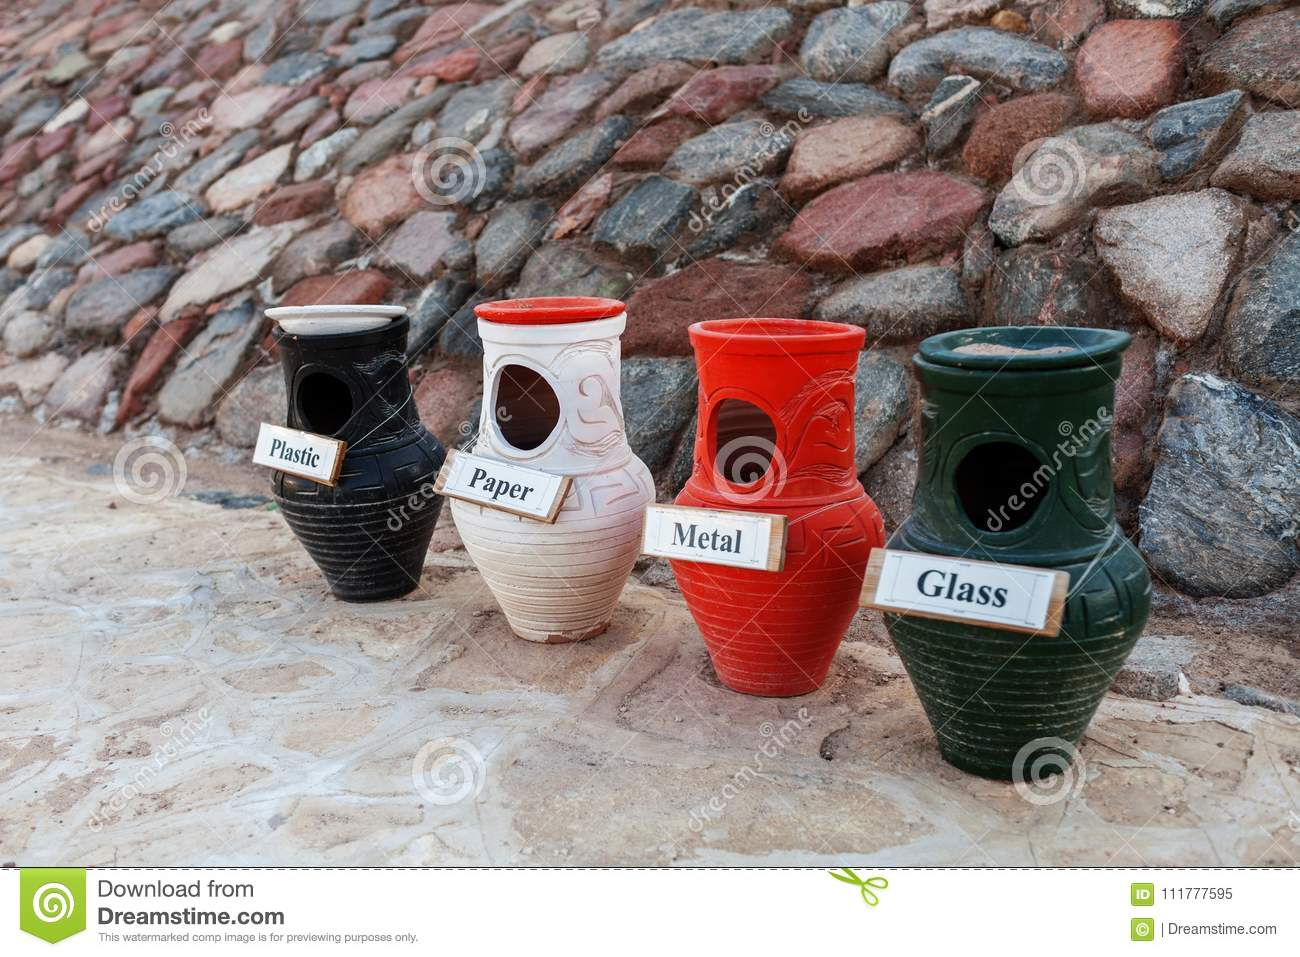 Separate collection of garbage and clay pots.